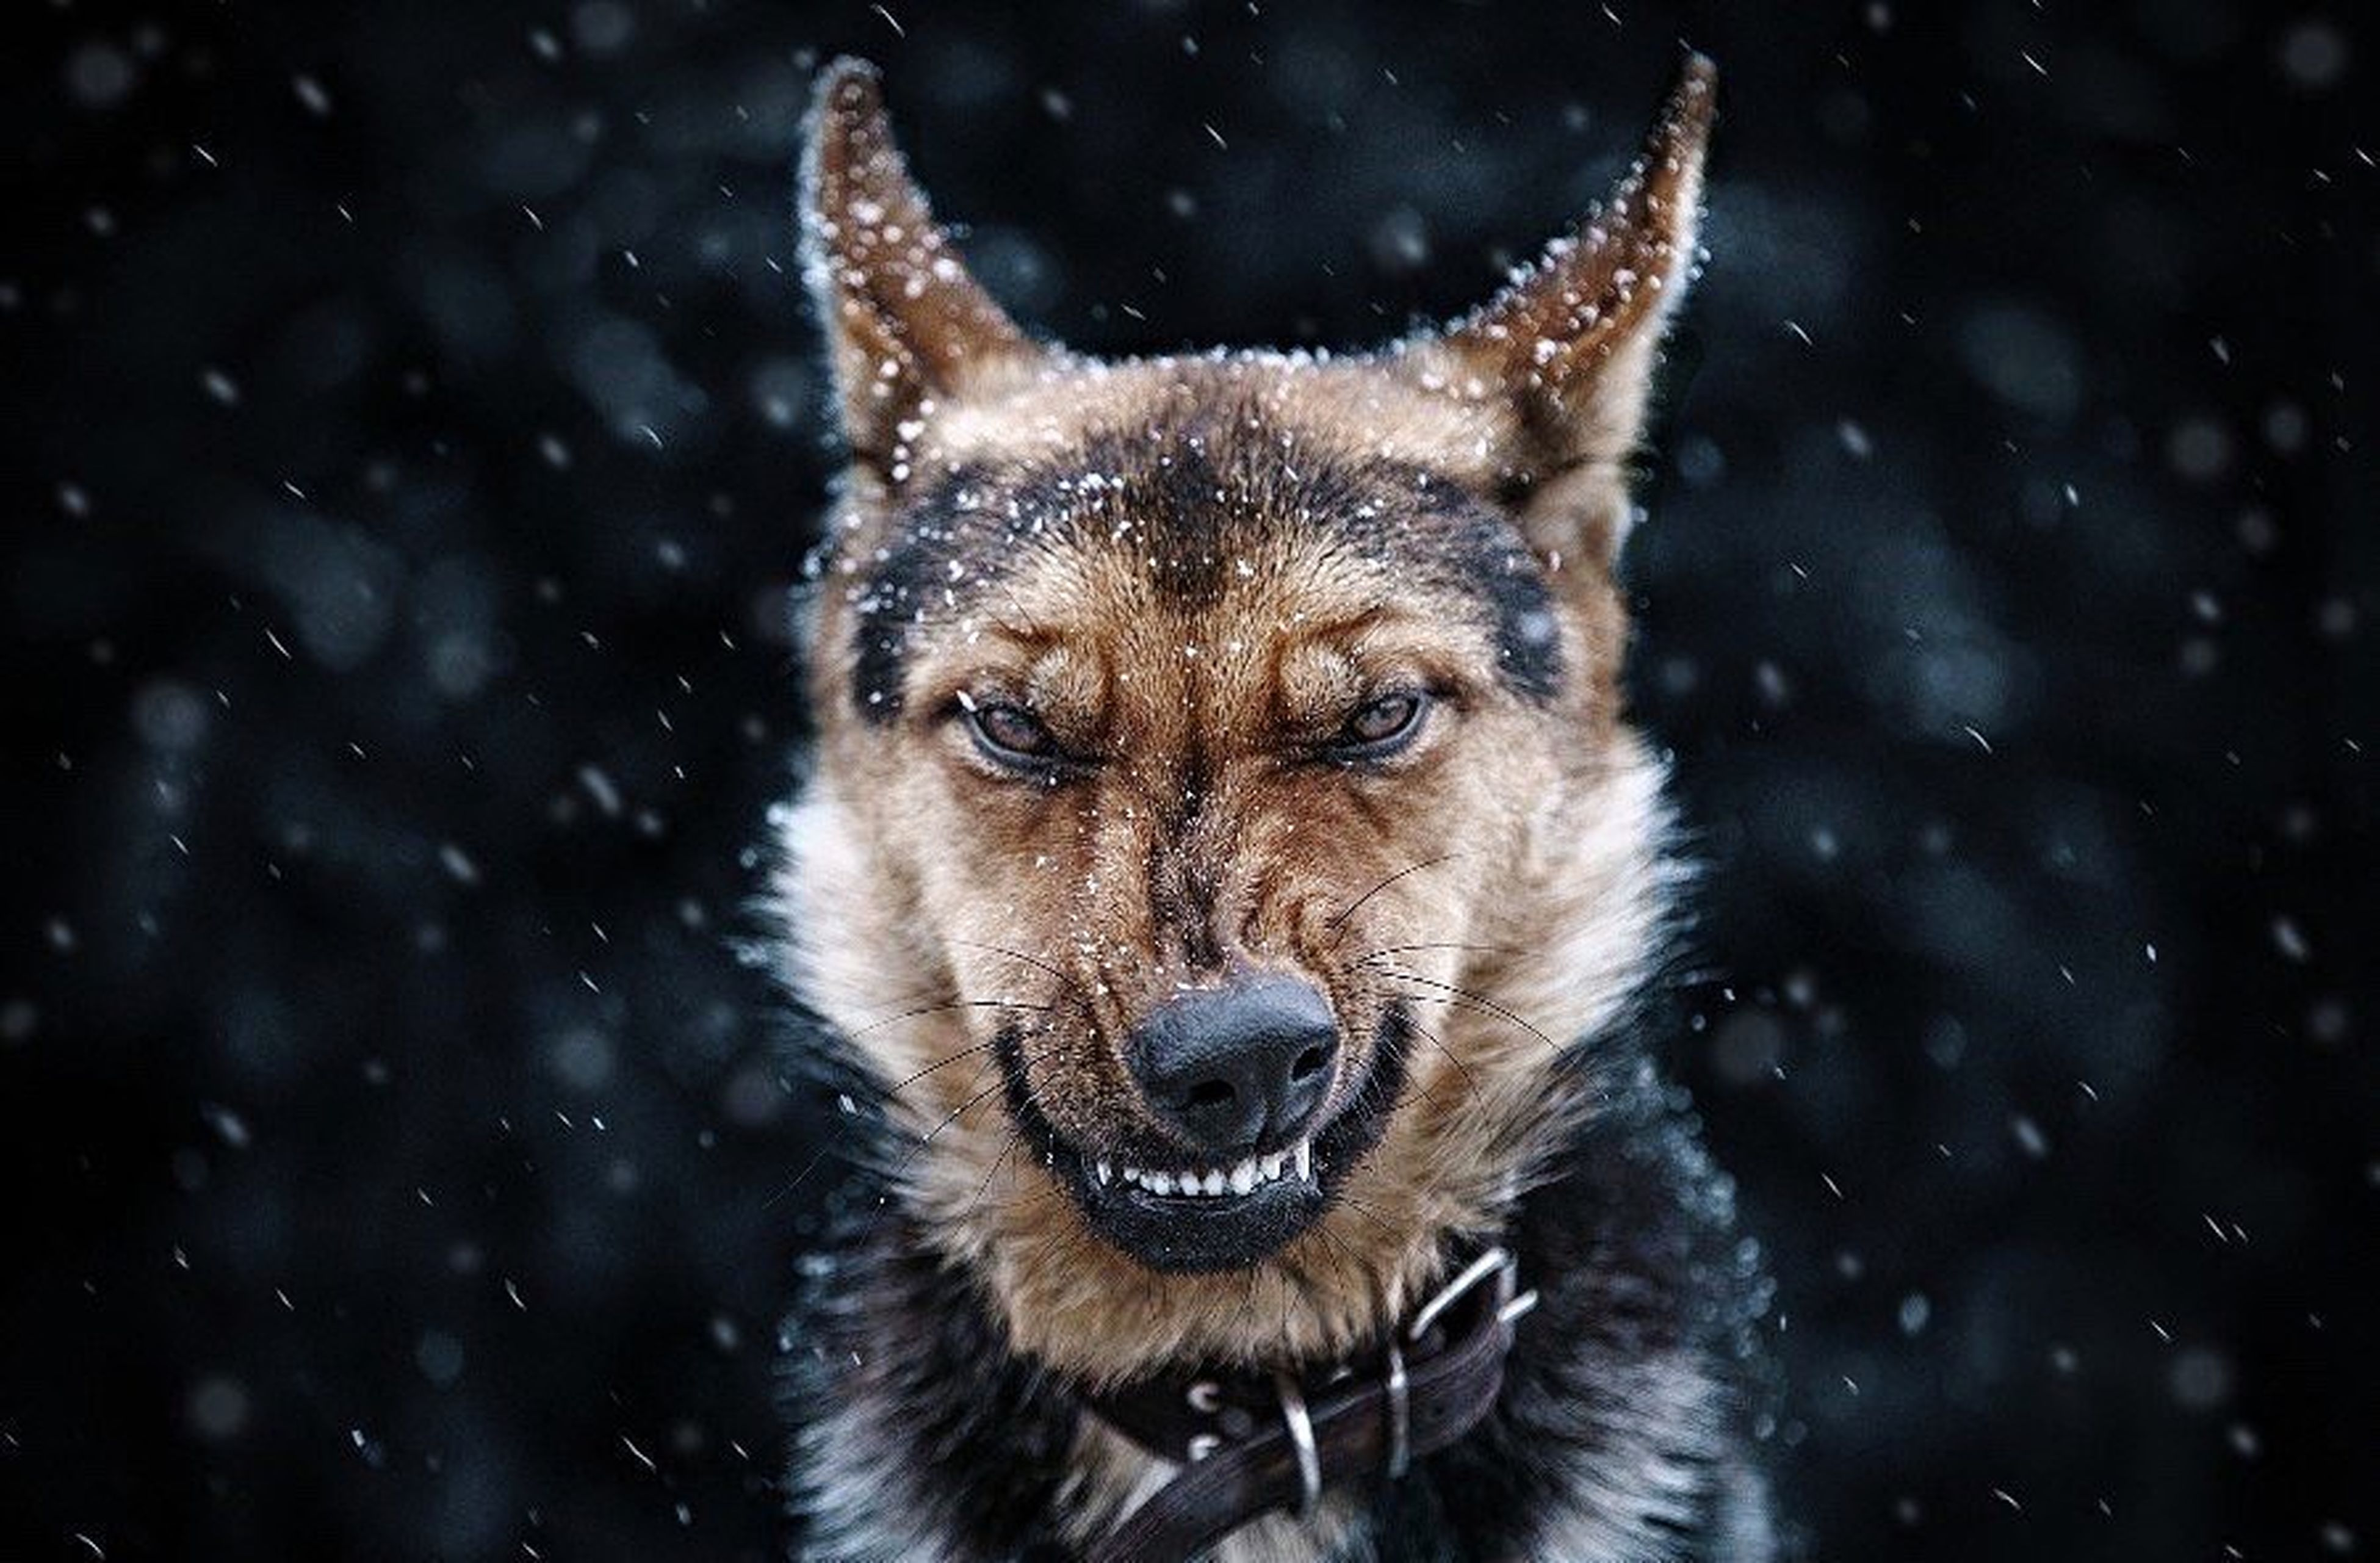 cold temperature, one animal, looking at camera, snowing, animal wildlife, portrait, animal themes, winter, snow, mammal, animal body part, close-up, outdoors, nature, no people, day